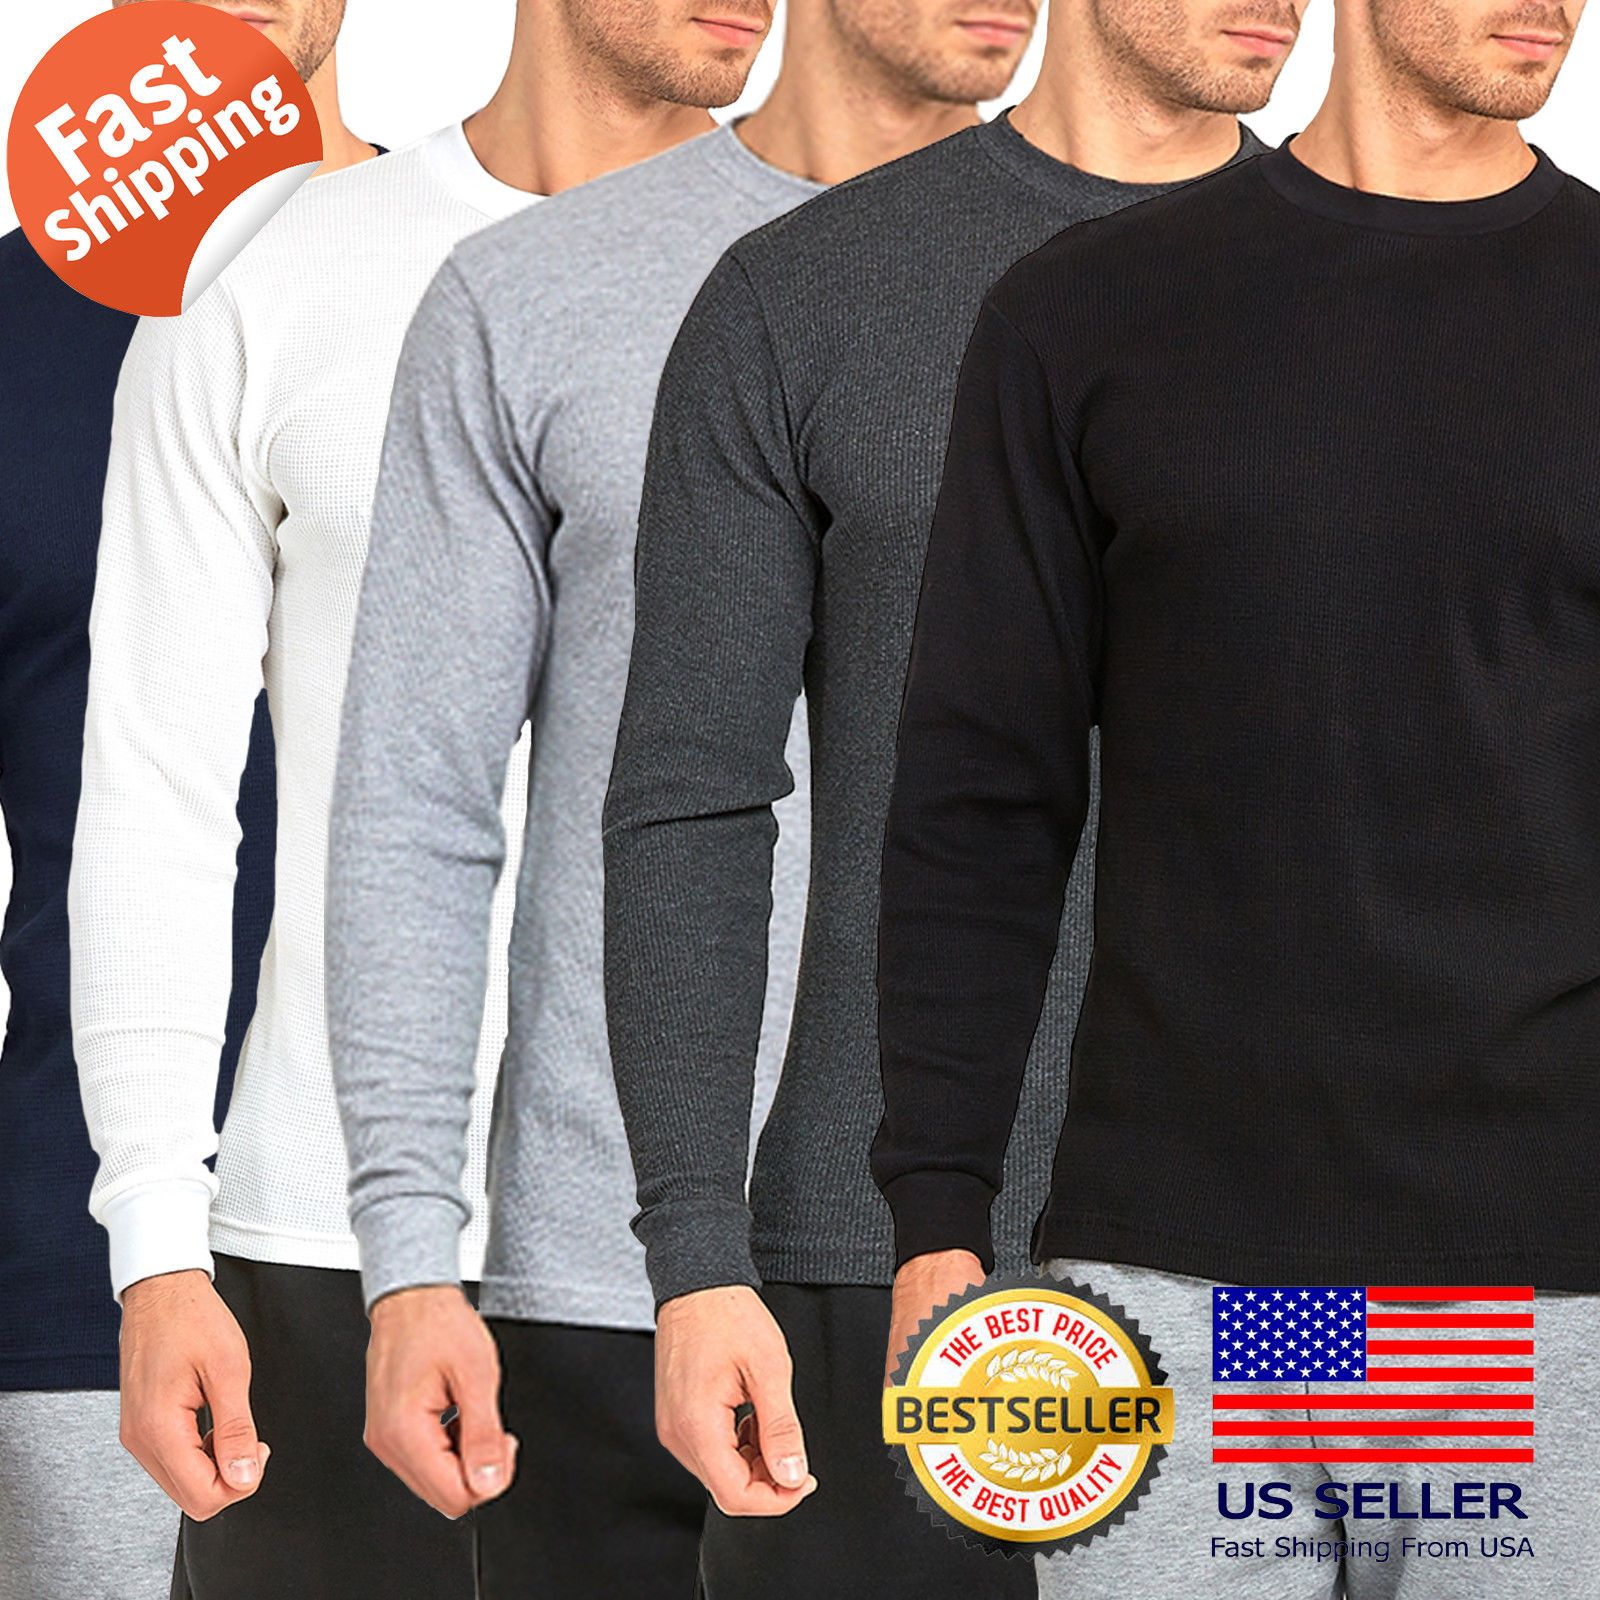 3aadd2d7 Casual Button-Down Shirts 57990: Mens 100% Cotton Medium Weight Thermal  Shirts Warm Winter Long Sleeve Fit -> BUY IT NOW ONLY: $11.25 on #eBay  #casual ...